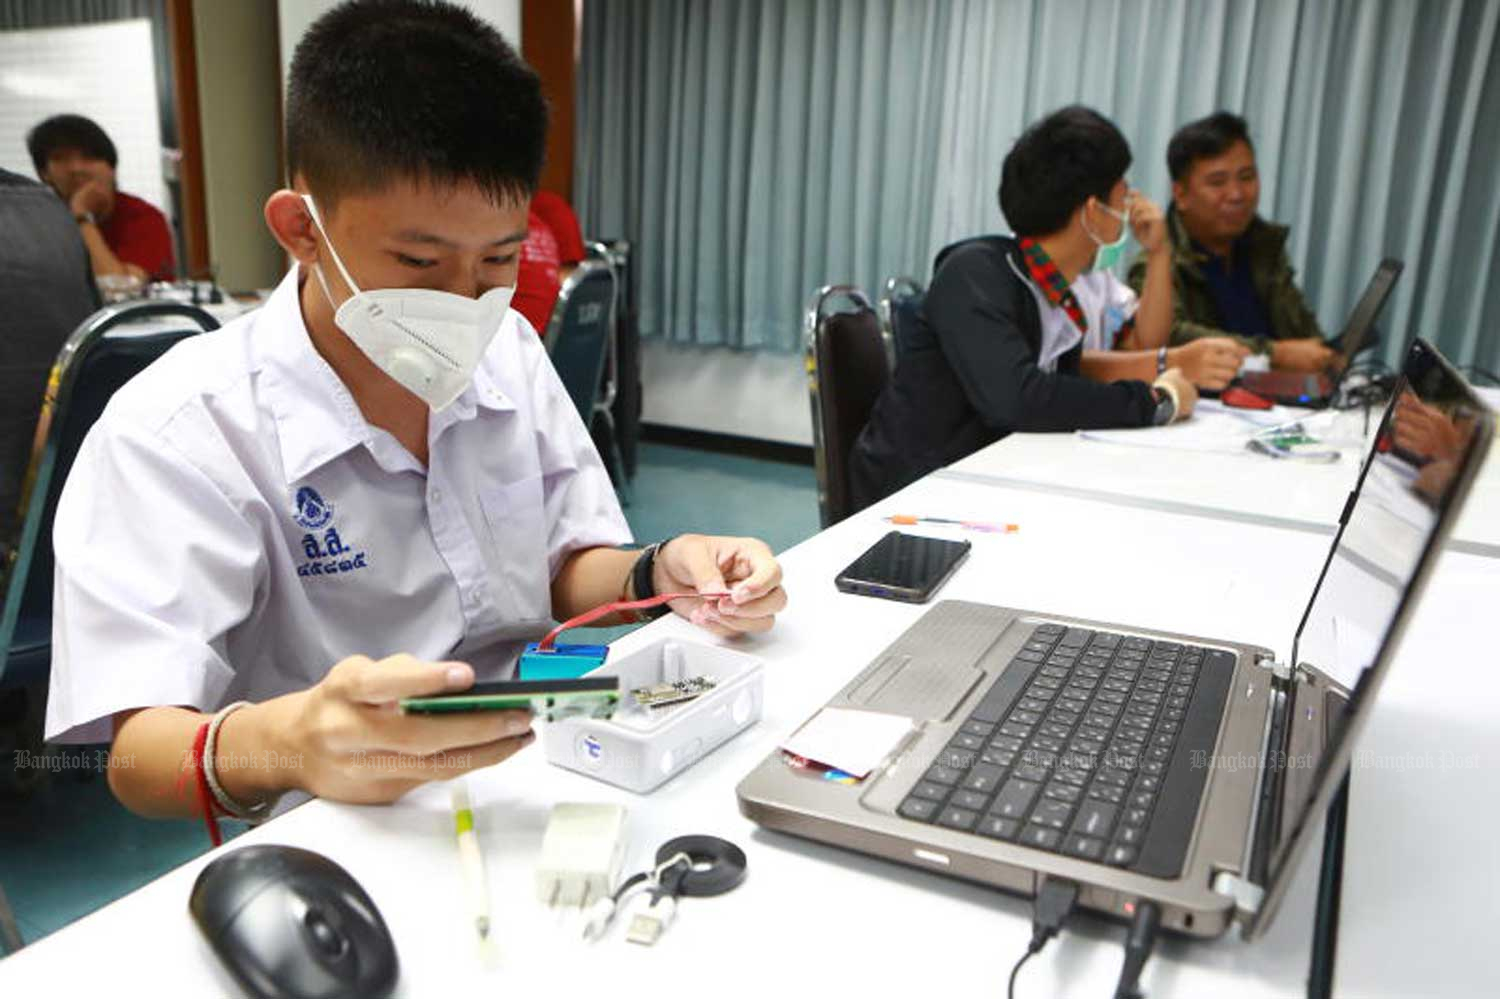 Students assemble fine-dust detectors to be distributed to schools affected by PM2.5 air pollution, during a workshop at the Engineering Institute of Thailand in Bangkok. (Photo by Somchai Poomlard)